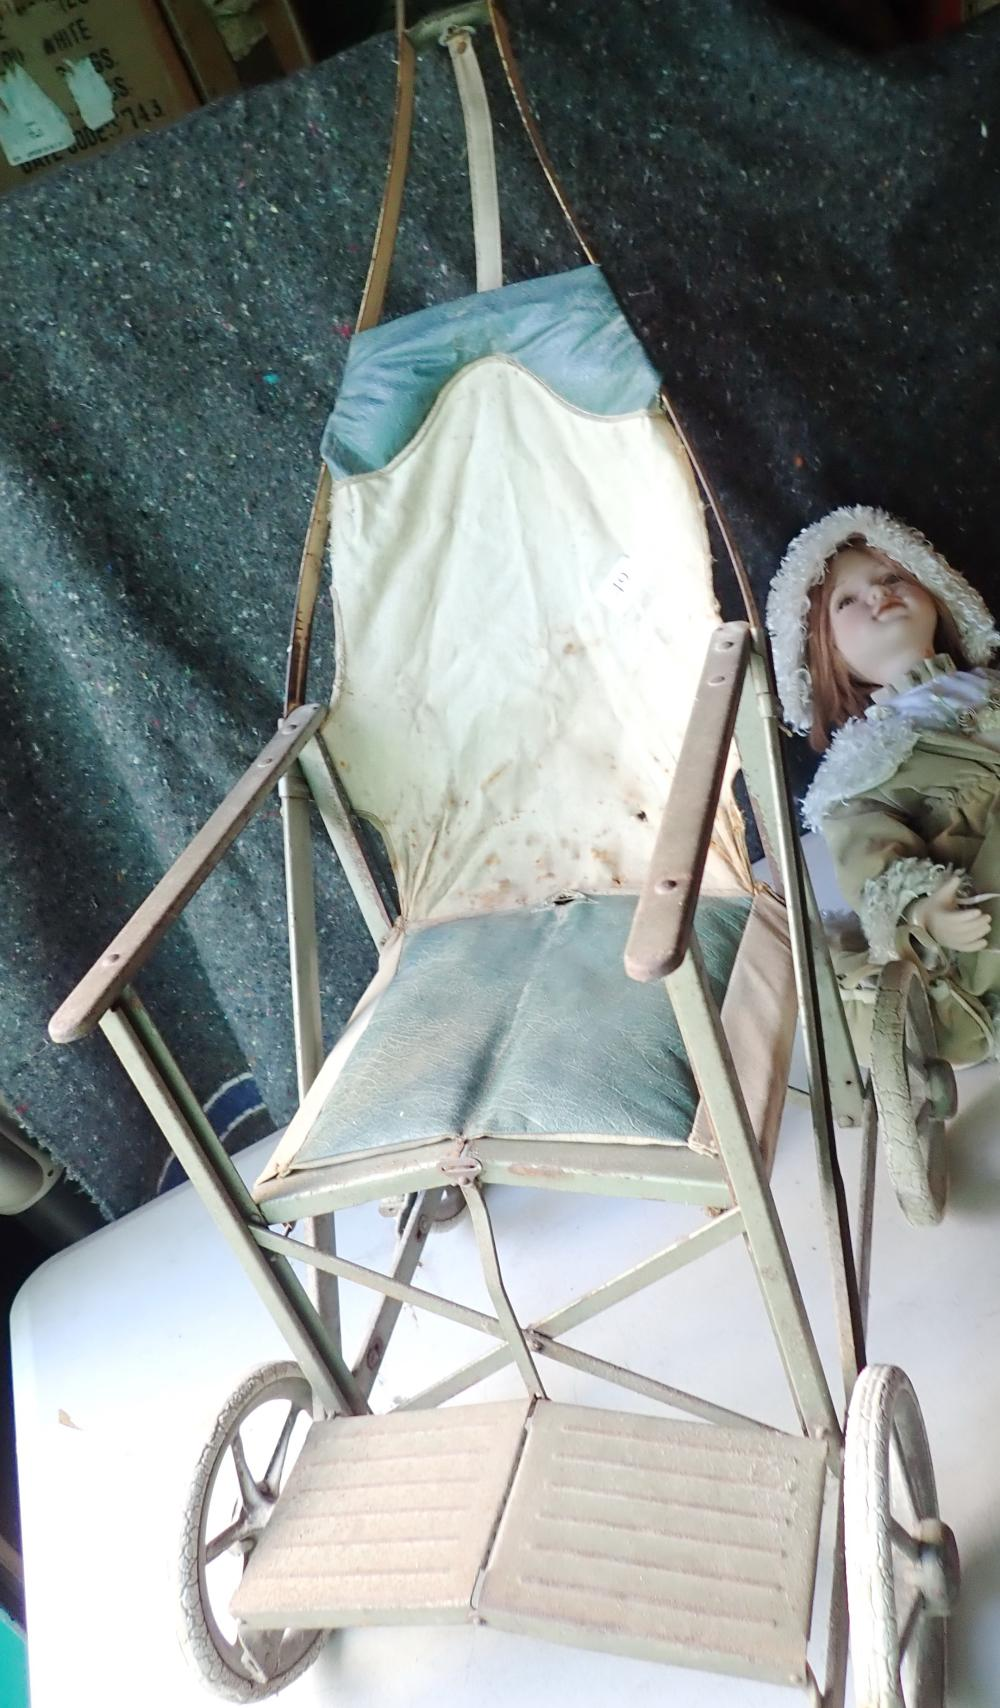 PORCELAIN DOLL IN 1950S METAL PRAM & CANVAS , NEW DOLL, KNEES PERMANENTLY BENT, PORCELAIN HEAD, LEG FROM KNEES DOWN AND ARMS, BODY ARMS & PART LEGS ARE MATERIAL